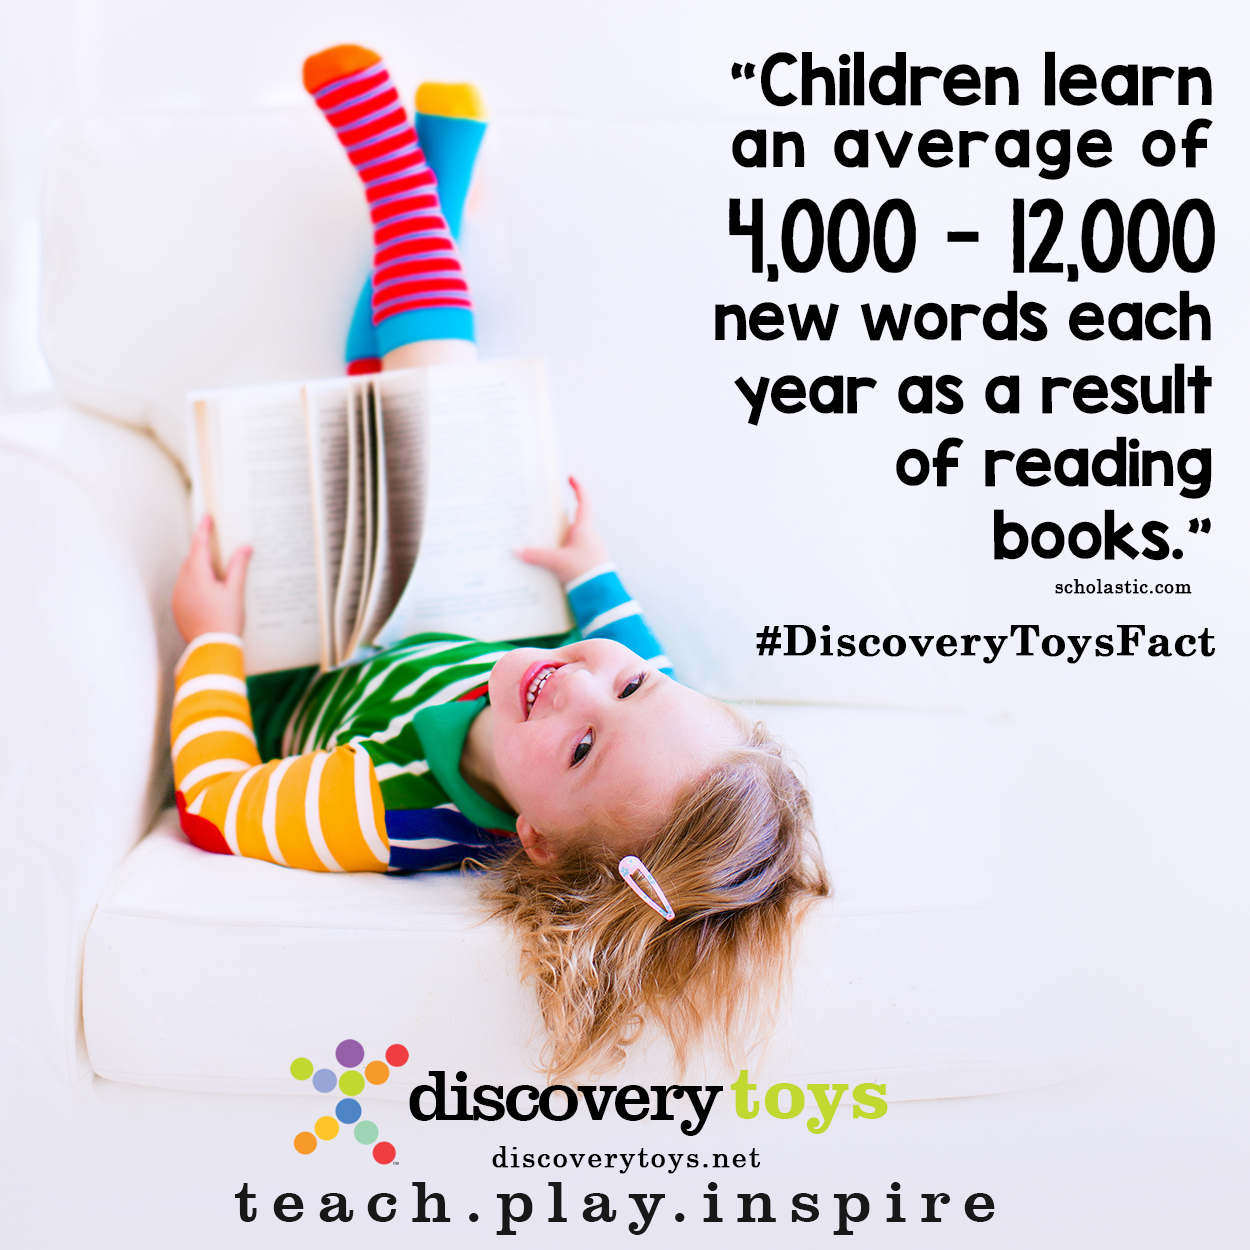 Did you know that reading is one of the ways that children begin to build their vocabularies? Promote your child's involvement in reading by reading to them daily and encouraging them to interact with books at an early age. #reading #earlyed #children #parents #discoverytoysfact #discoverytoys